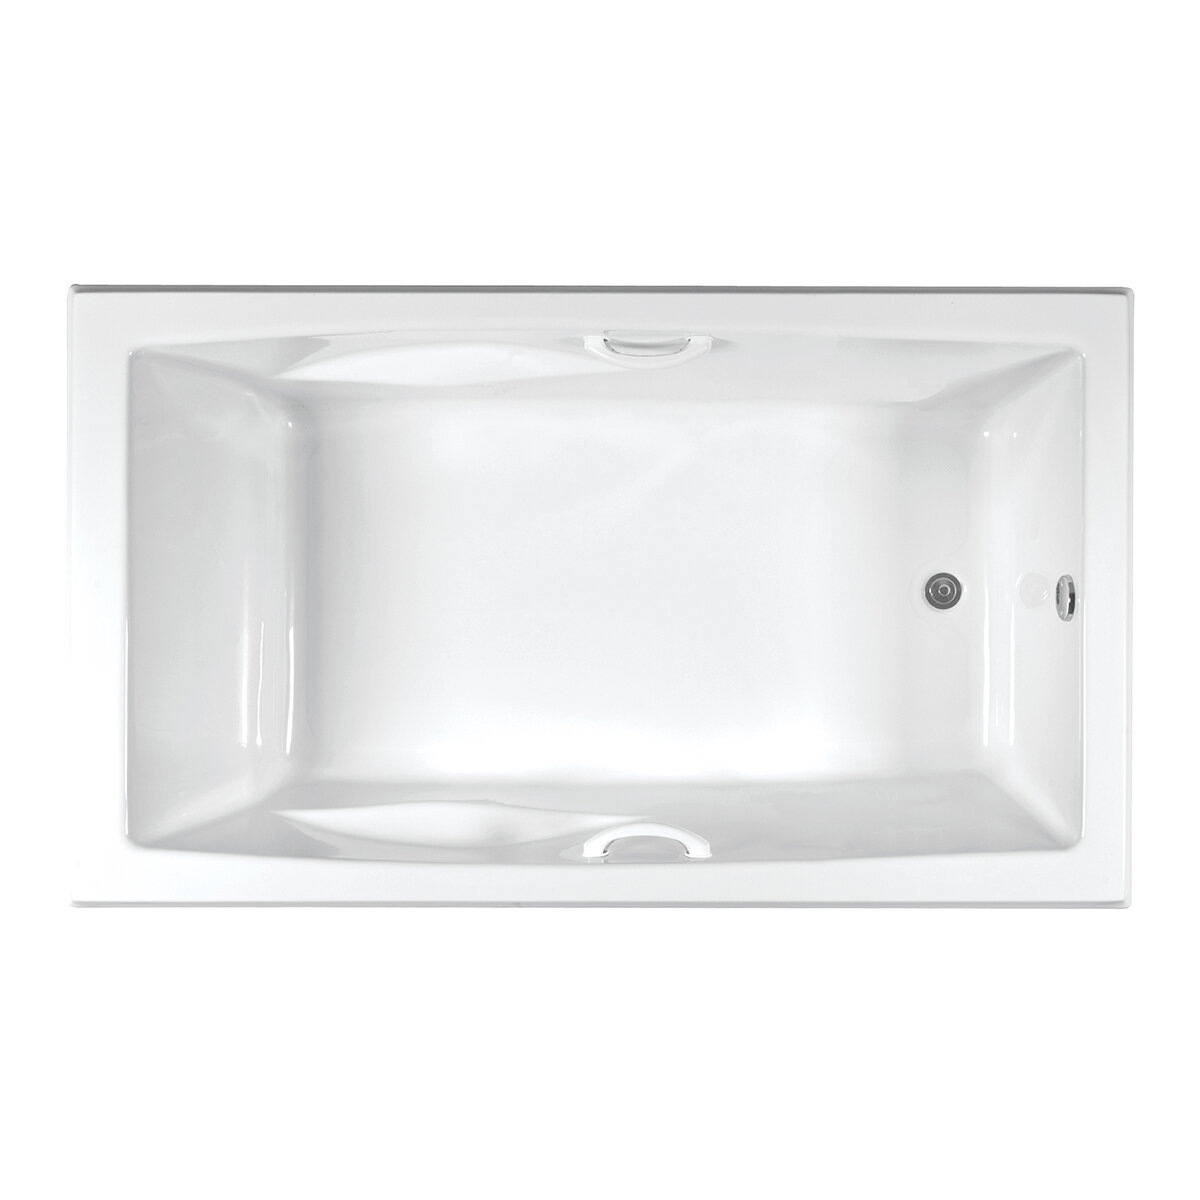 Brentwood 3672 Rectangle Swirl-Way Tub (DISPLAY ONLY)